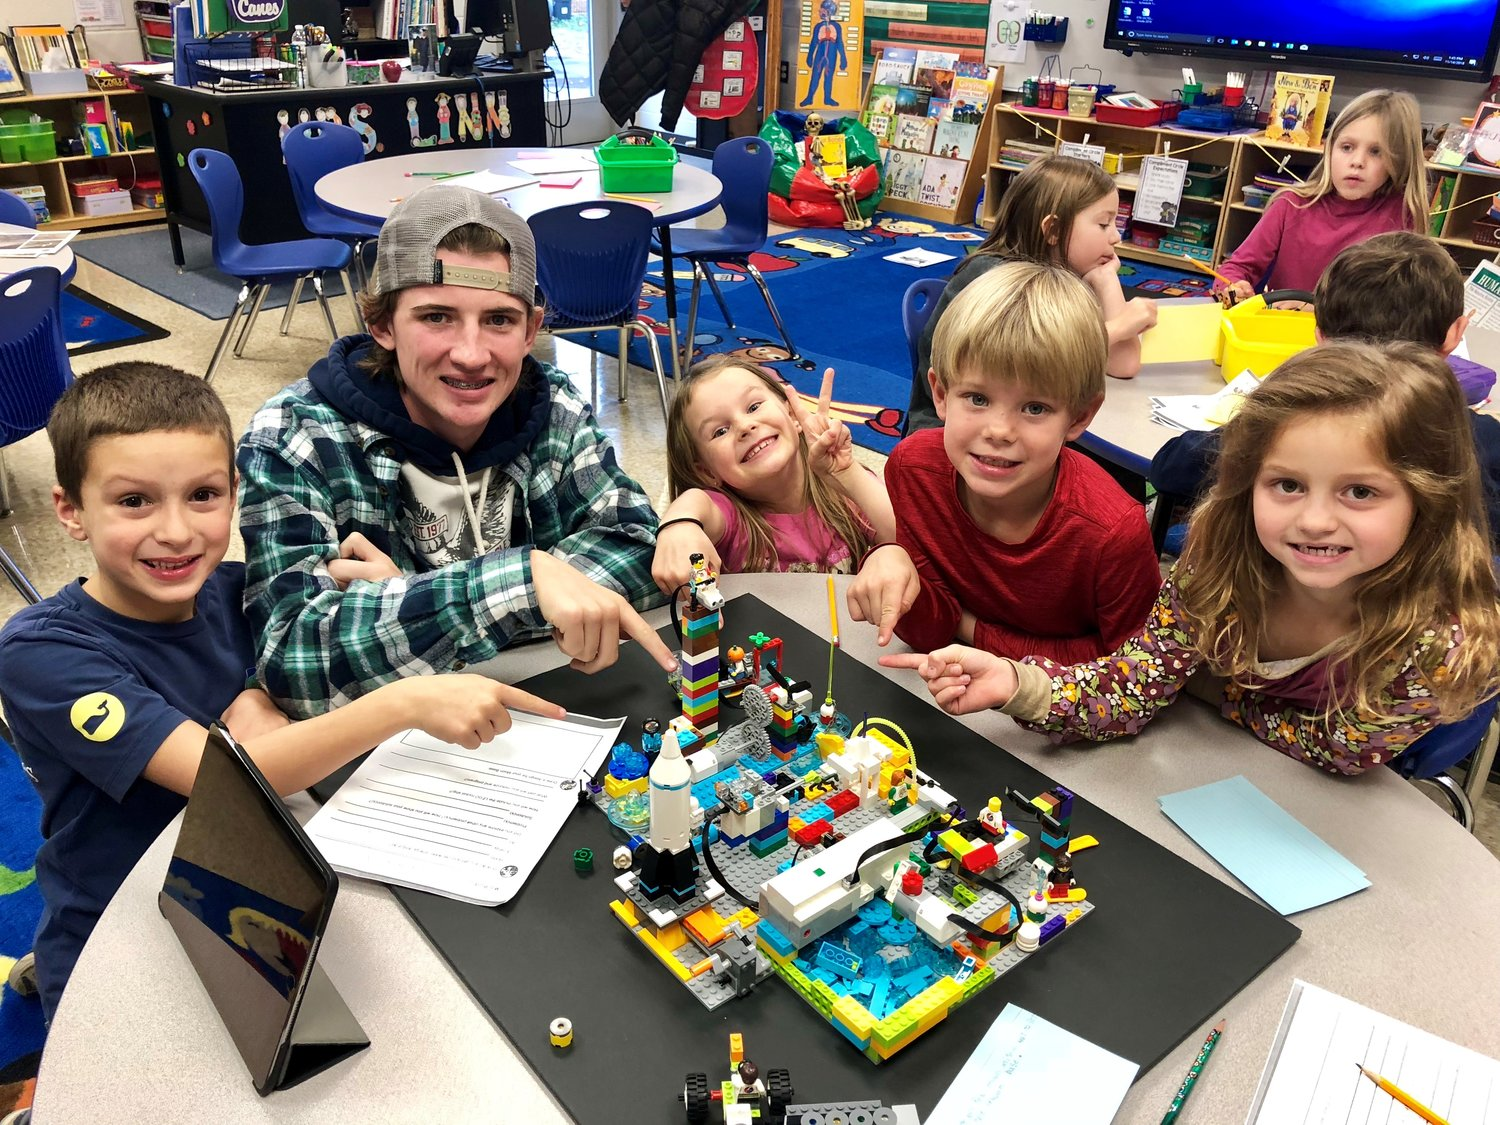 Cps S Gifted 2nd Graders Learn About Robotics The Daily Tribune News